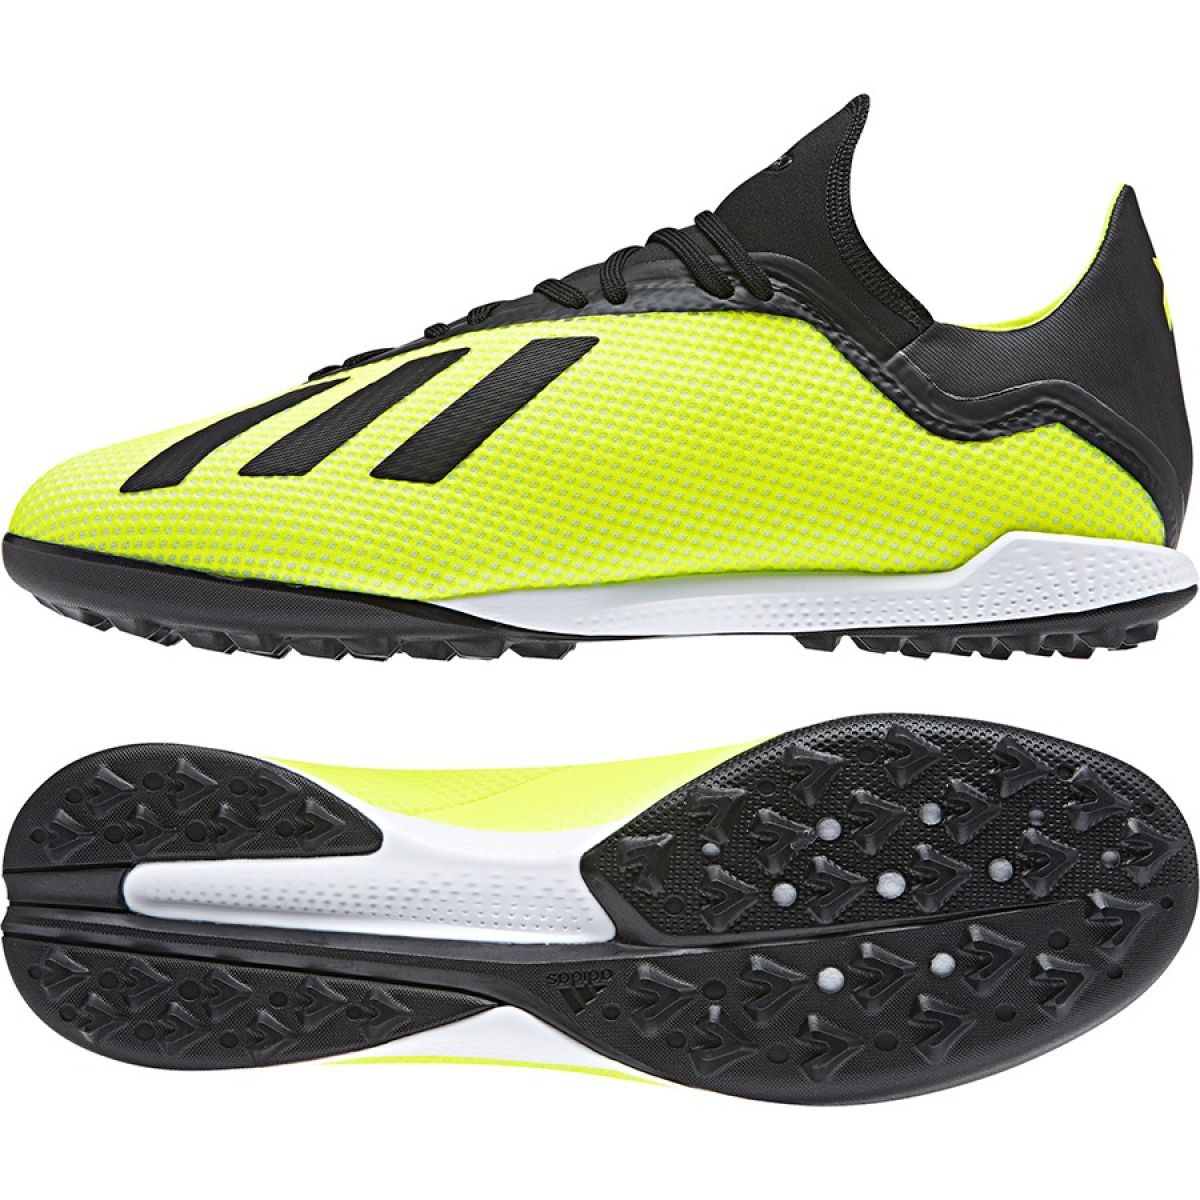 cheap for discount 96b2b 79075 Football boots adidas X Tango 18.3 Tf M DB2475